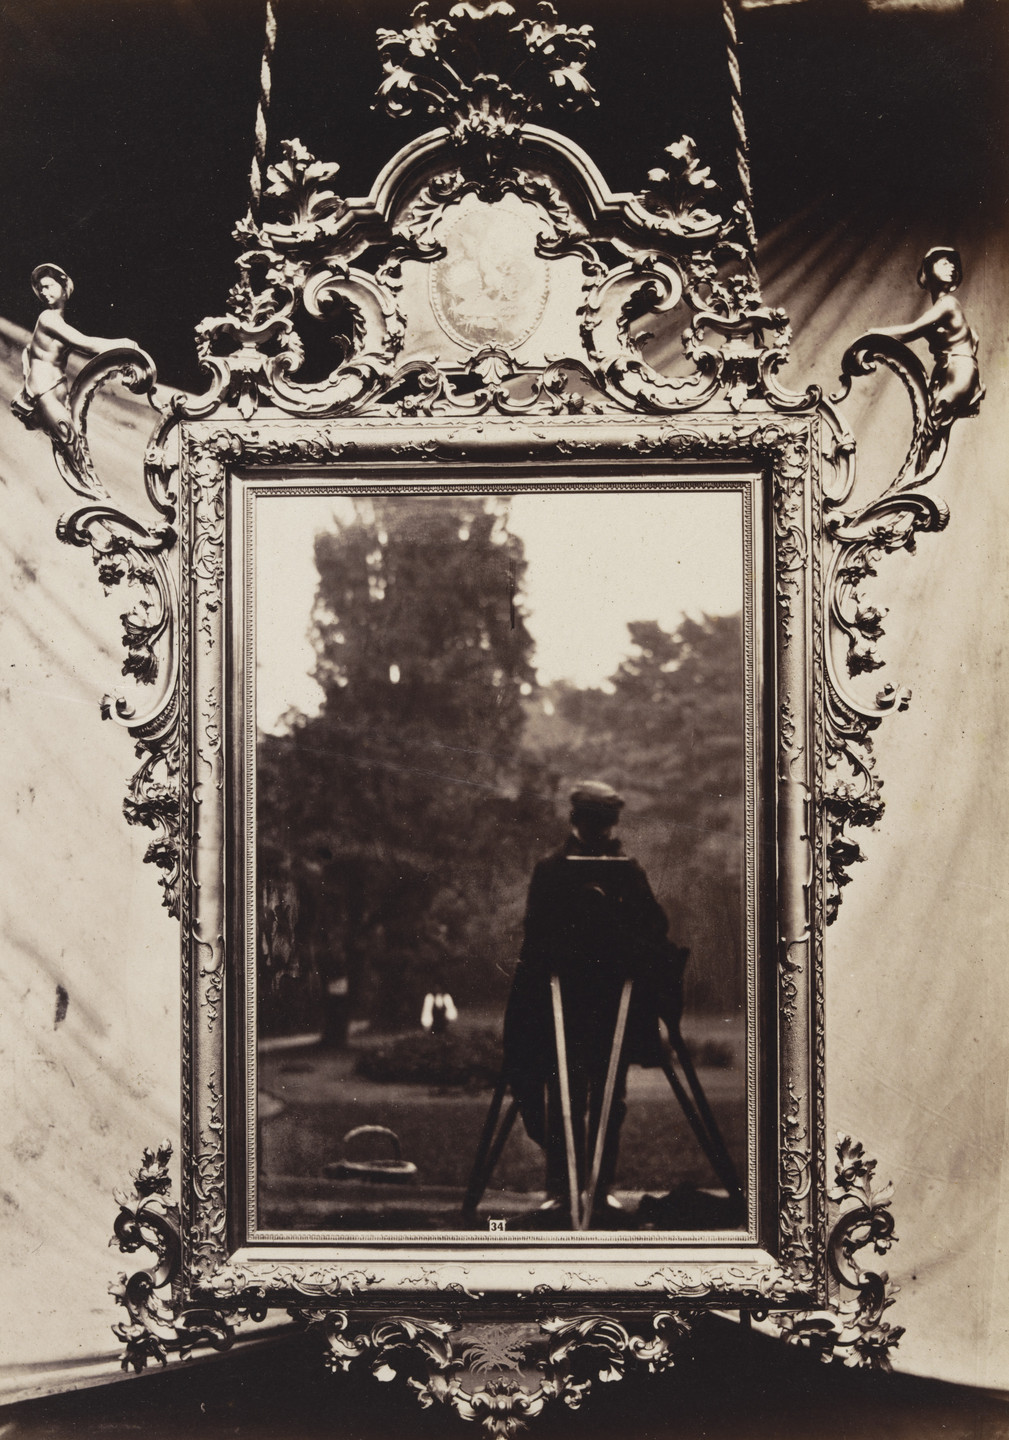 Charles Thurston Thompson. Venetian Mirror, c. 1700, from the Collection of John Webb. 1853